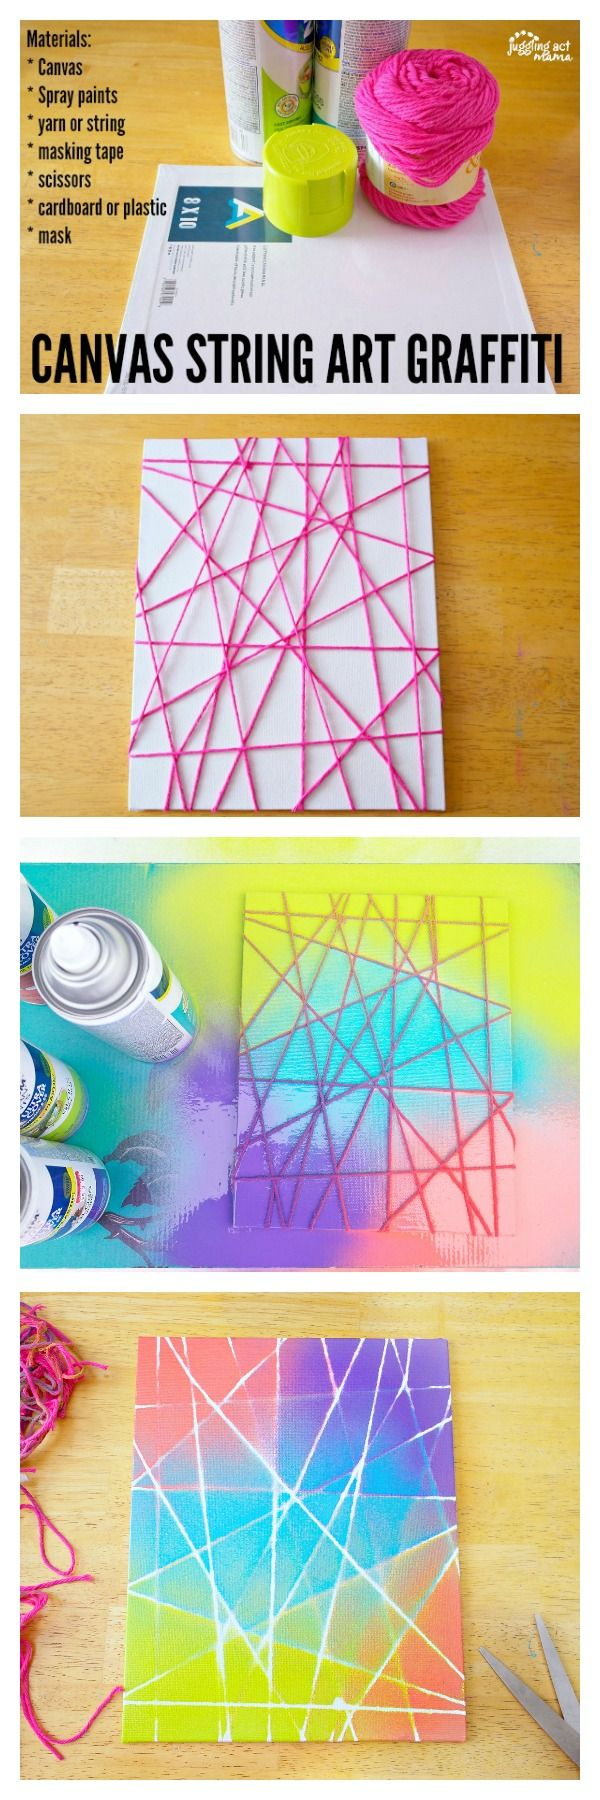 Interesting Paint Ideas Canvas String Art Graffiti Spray Paint Projects String Art And